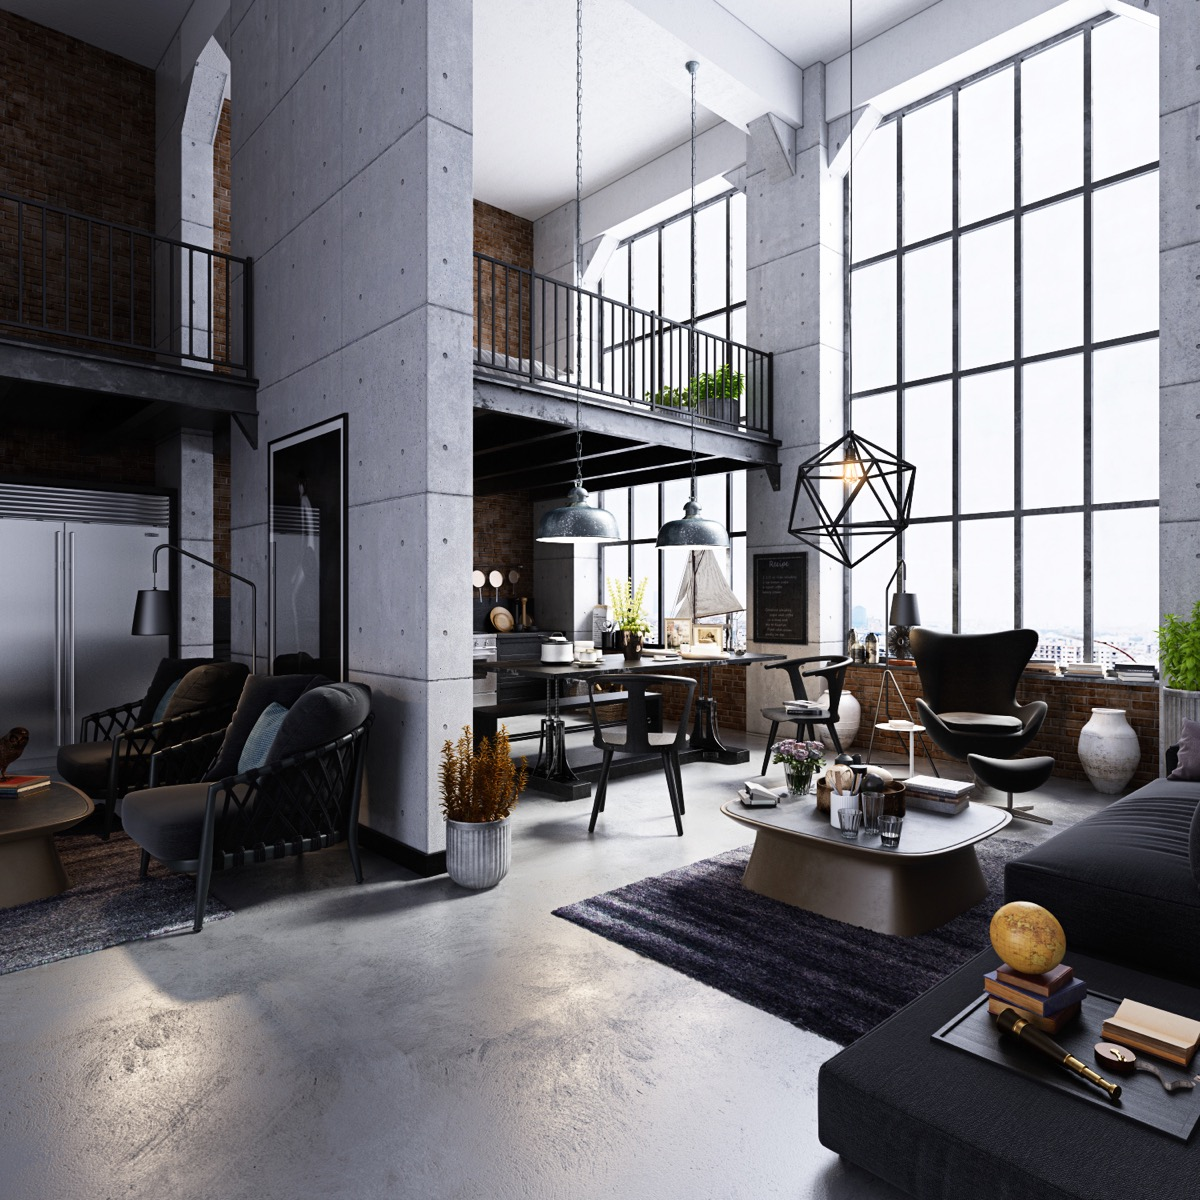 6 - Industrial Living Room Decor